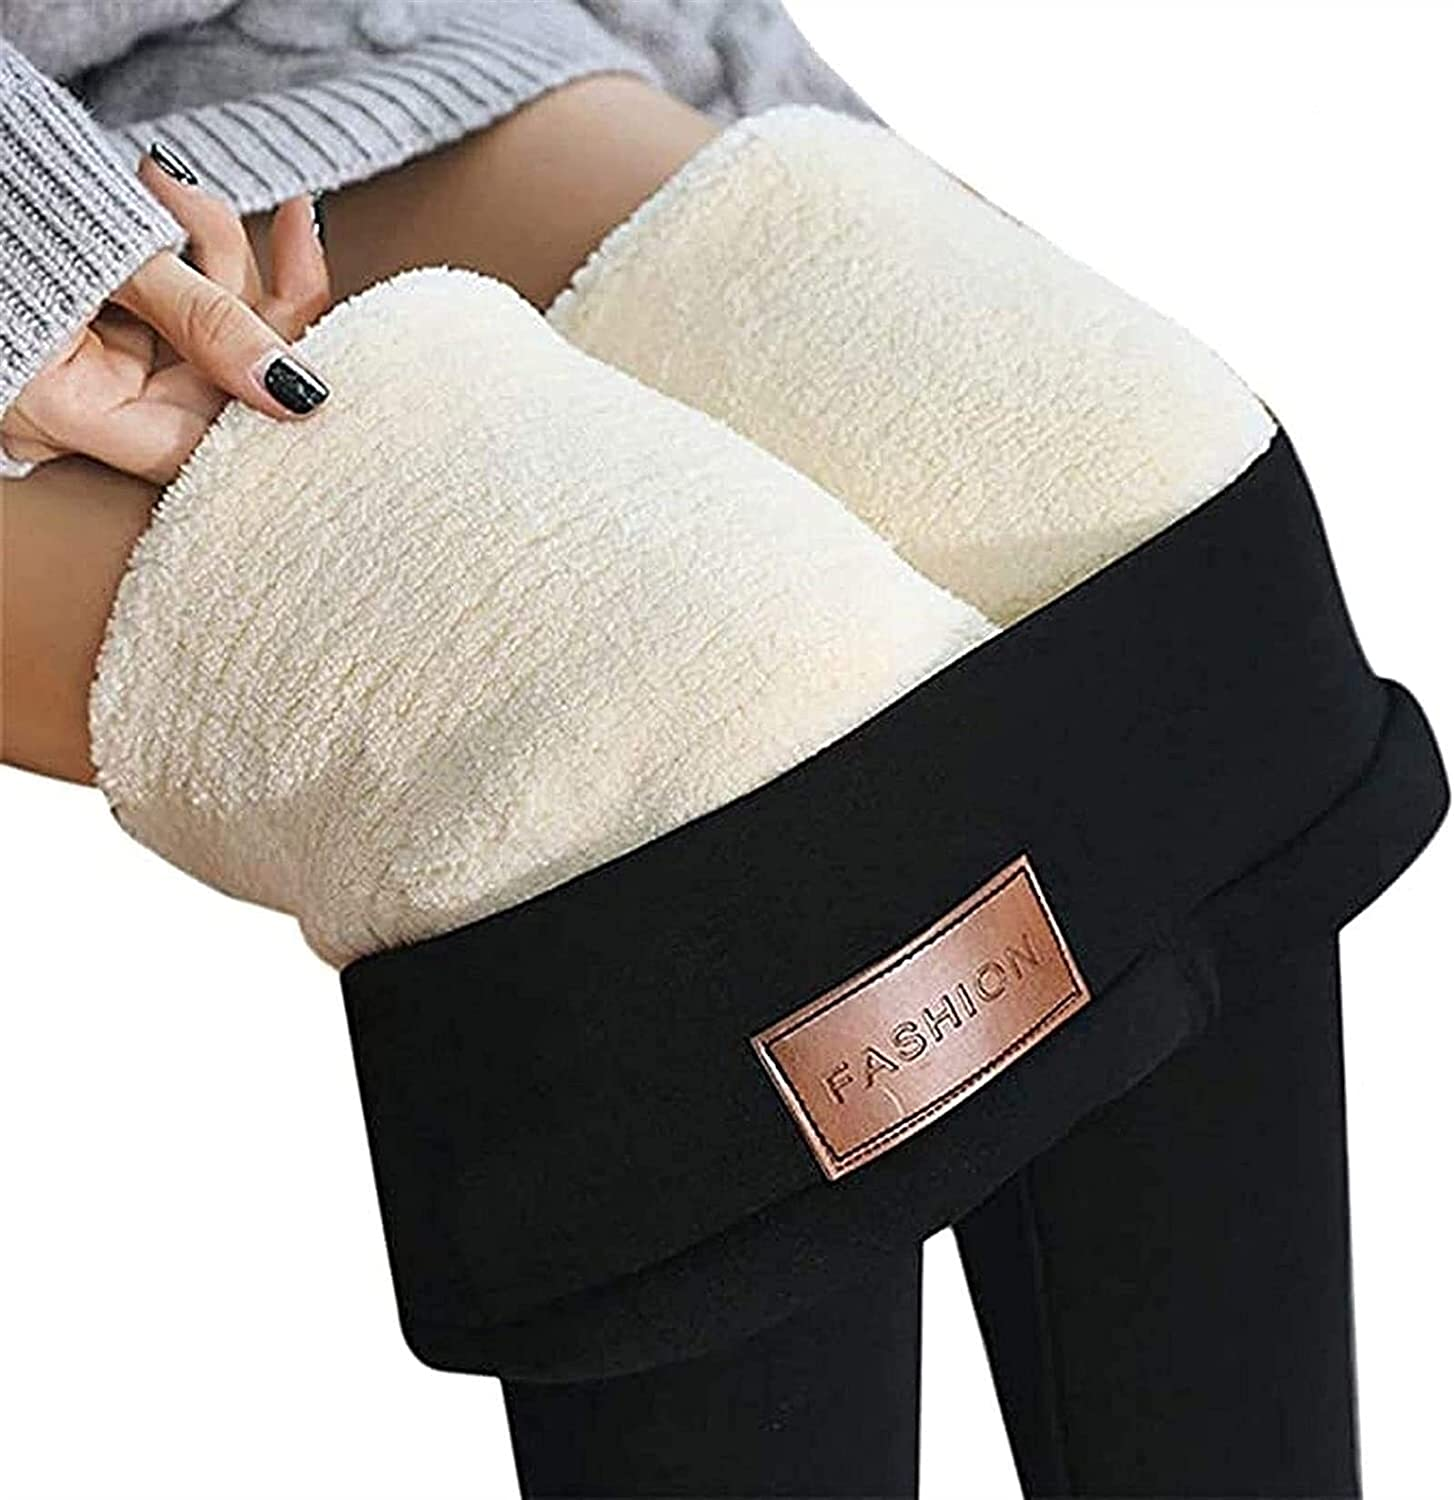 HSOSK Leggings Winter Warm Popular product Fleece Directly managed store Therm Women Lined for